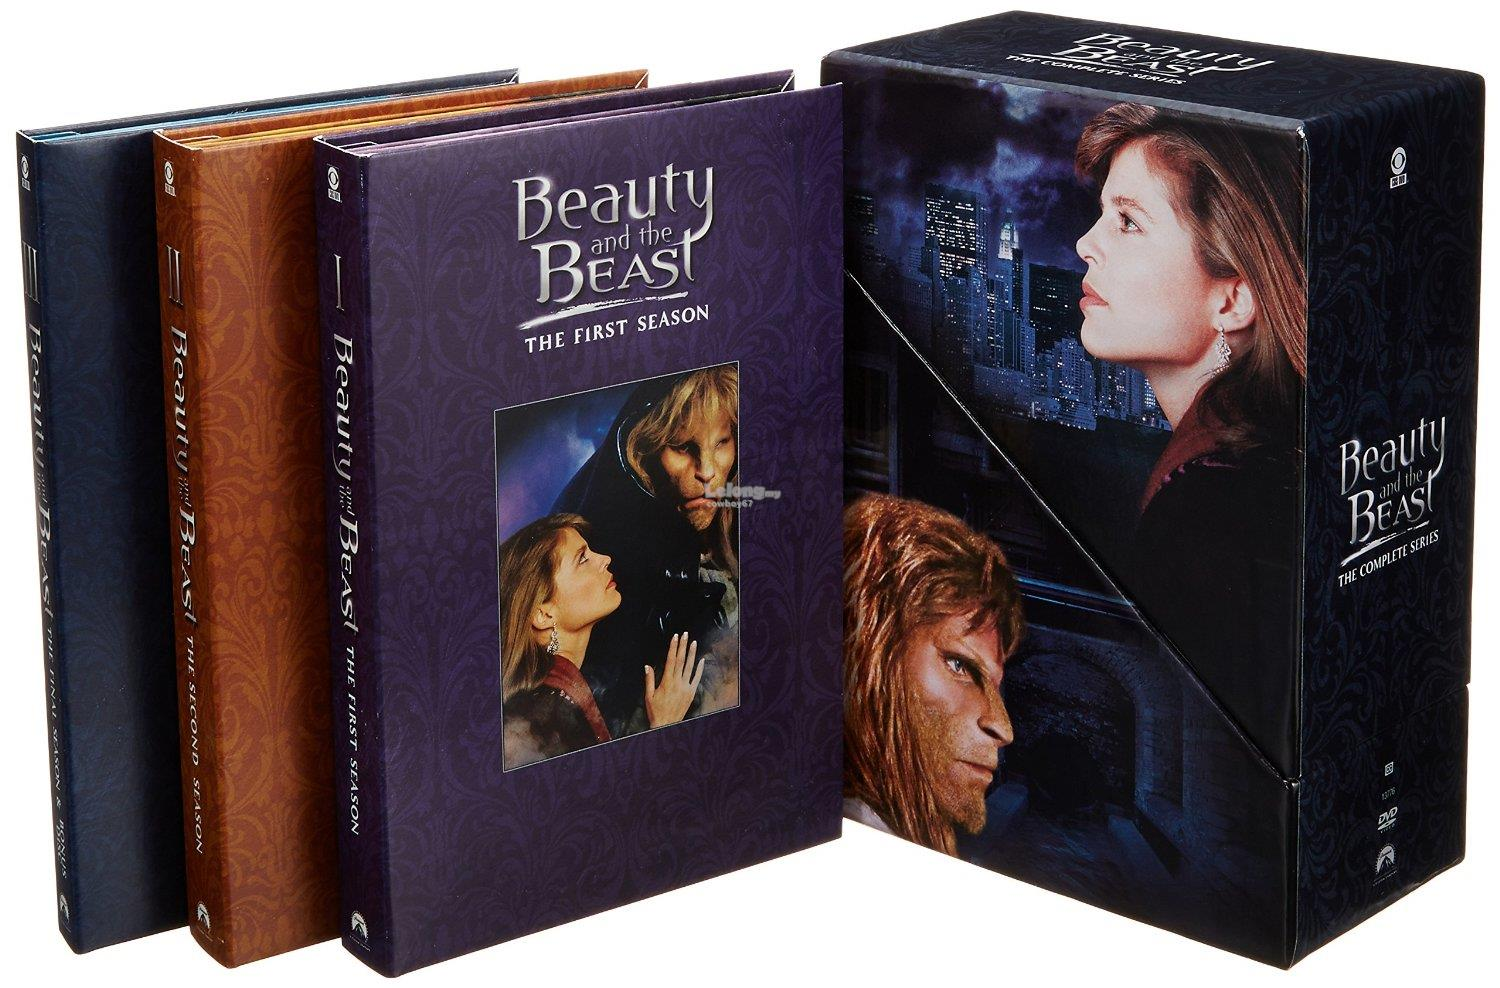 Beauty And The Beast - The Complete Series - New DVD Box Set